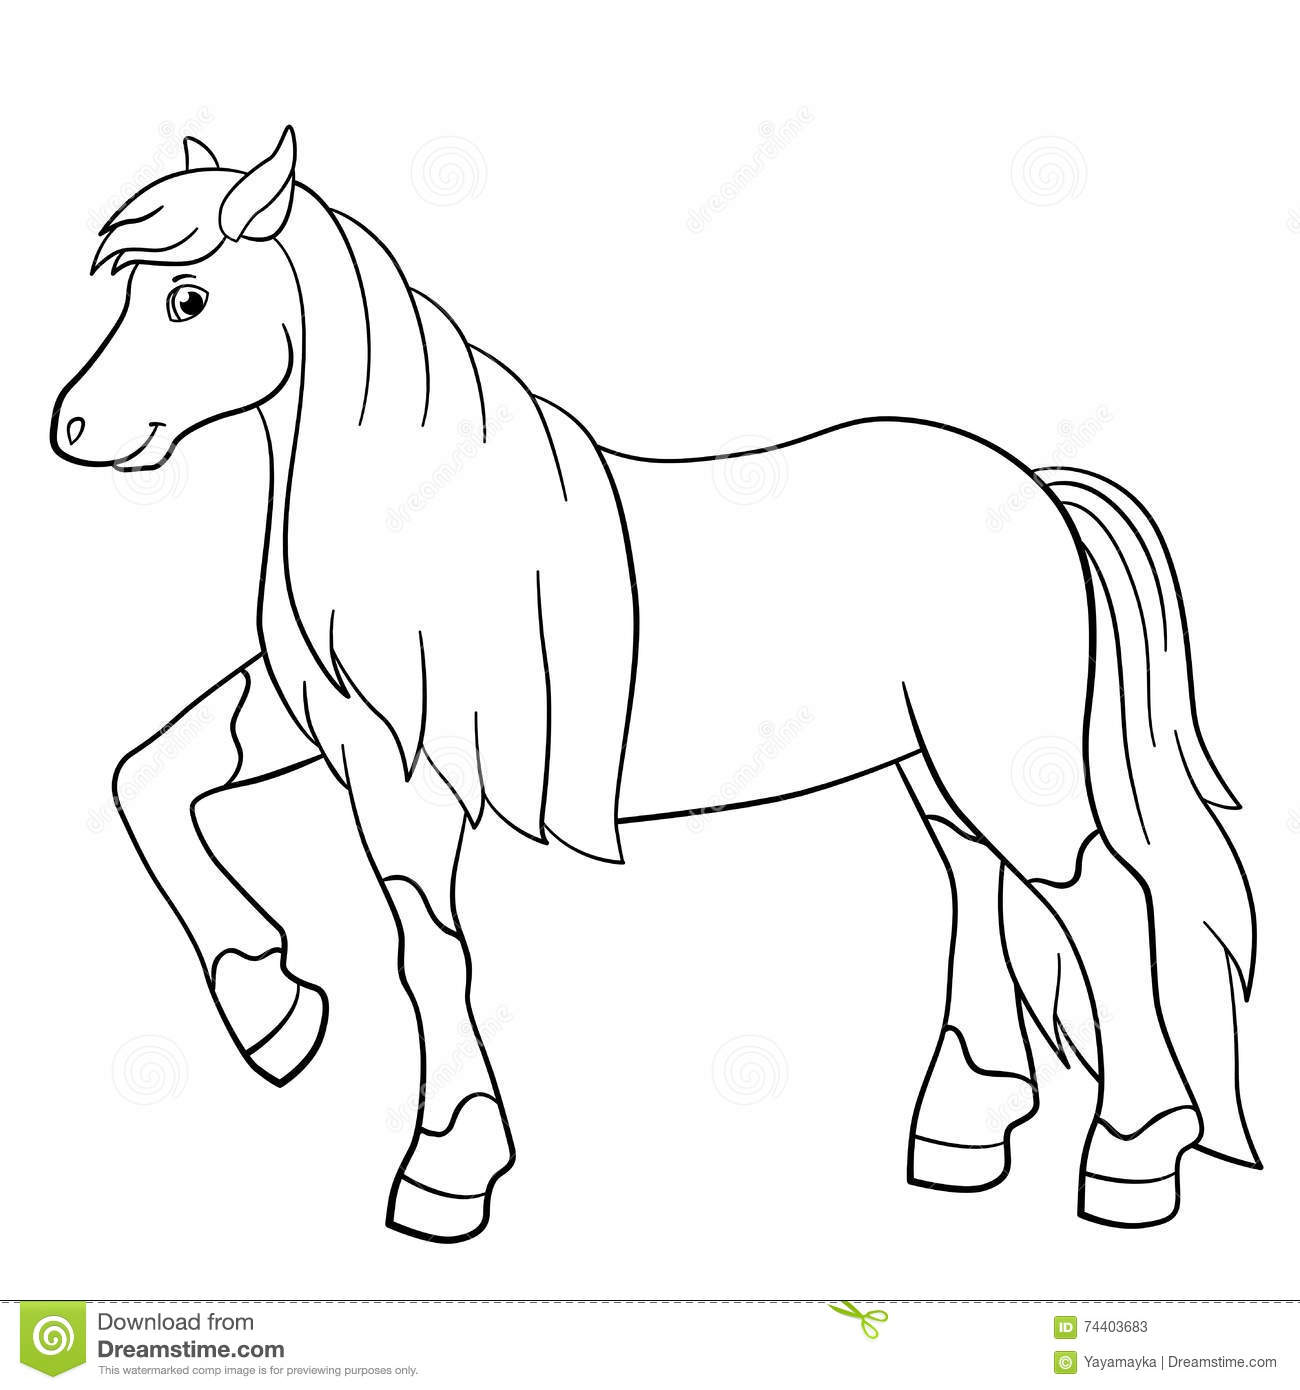 adorable coloring pages Coloring Pages. Farm Animals. Cute Horse. Stock Vector  adorable coloring pages